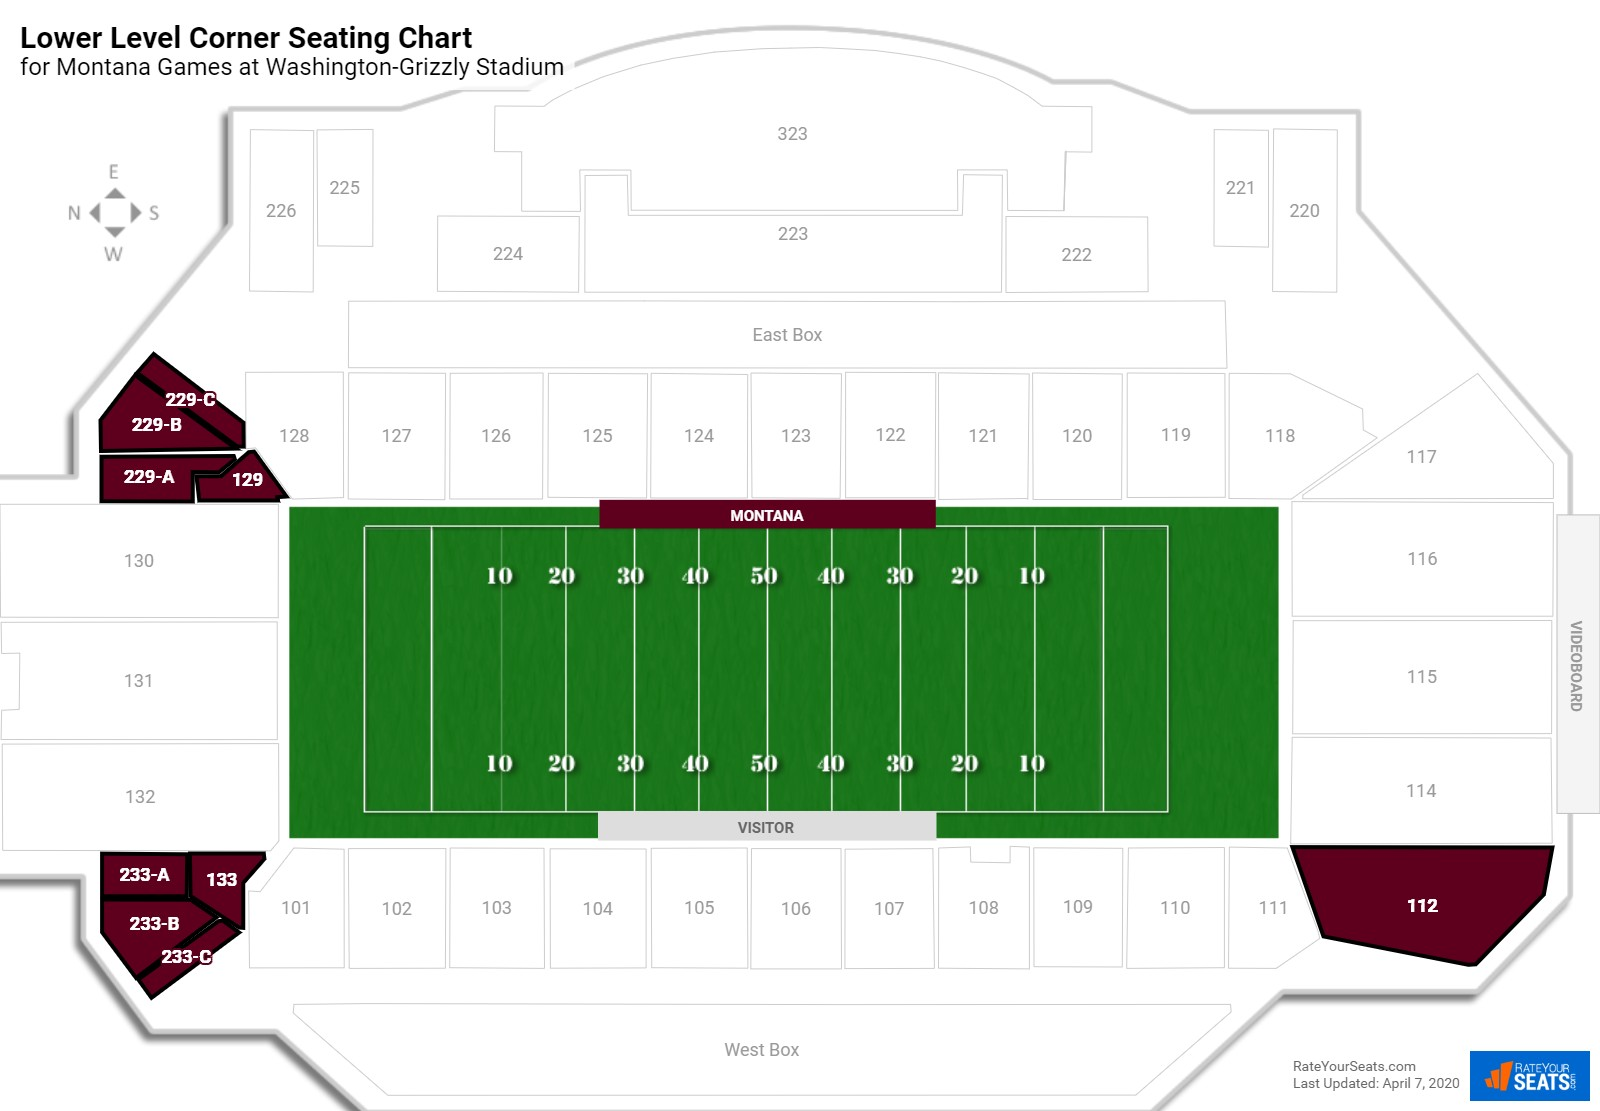 Washington-Grizzly Stadium Lower Level Corner seating chart